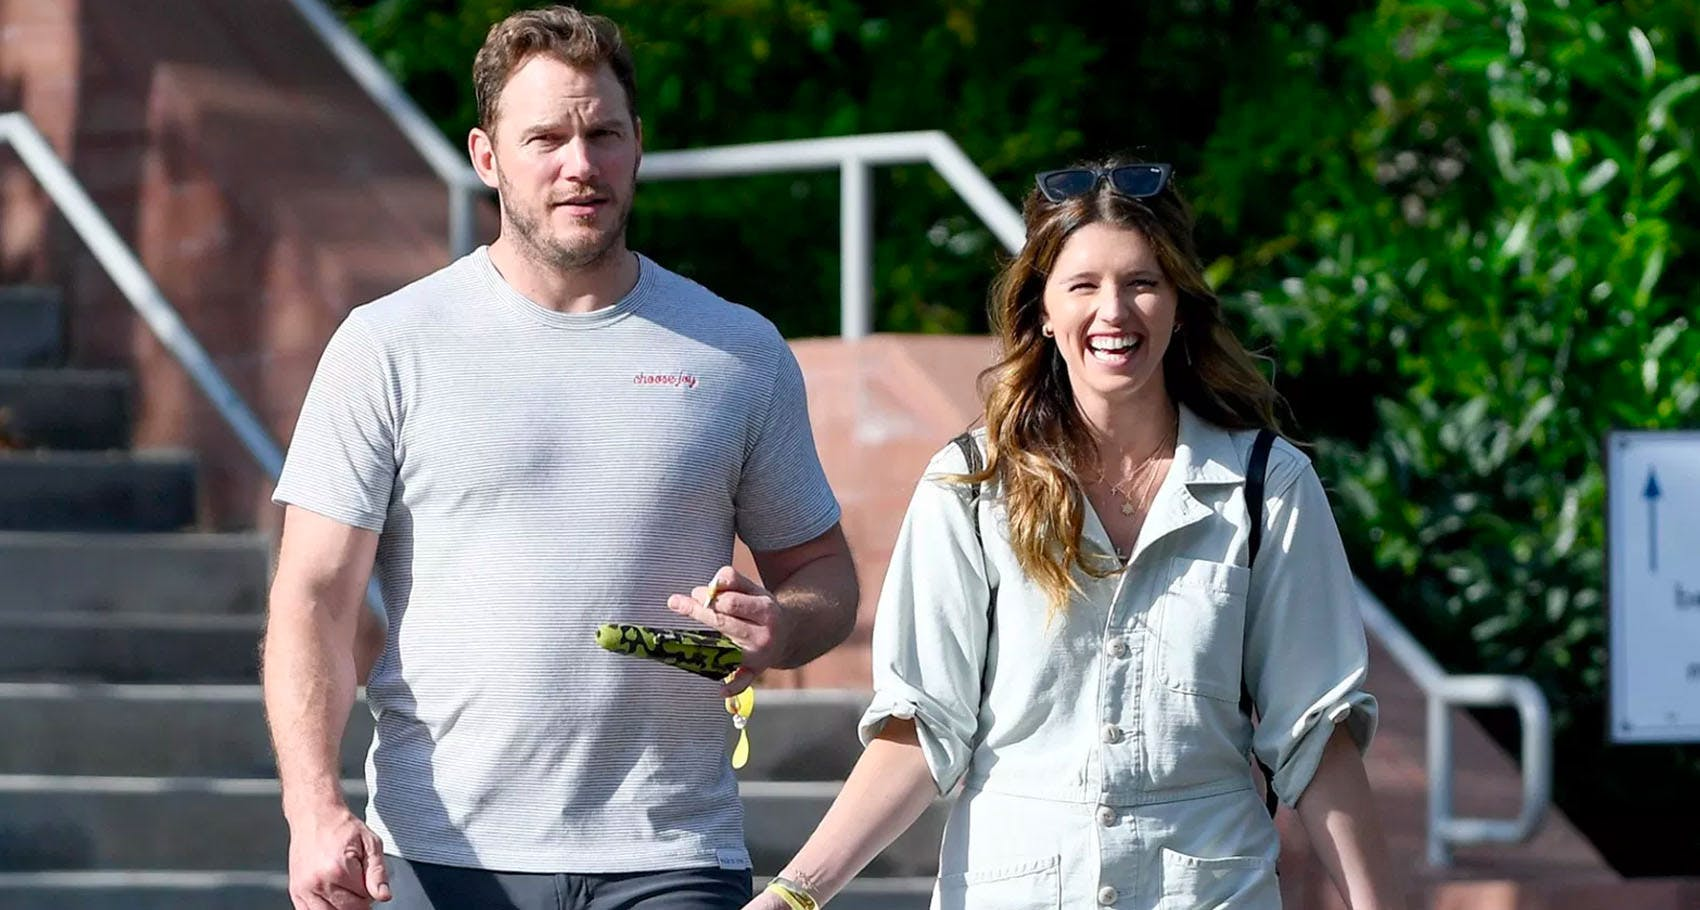 Chris Pratt because he got engaged to Katherine Schwarzenegger